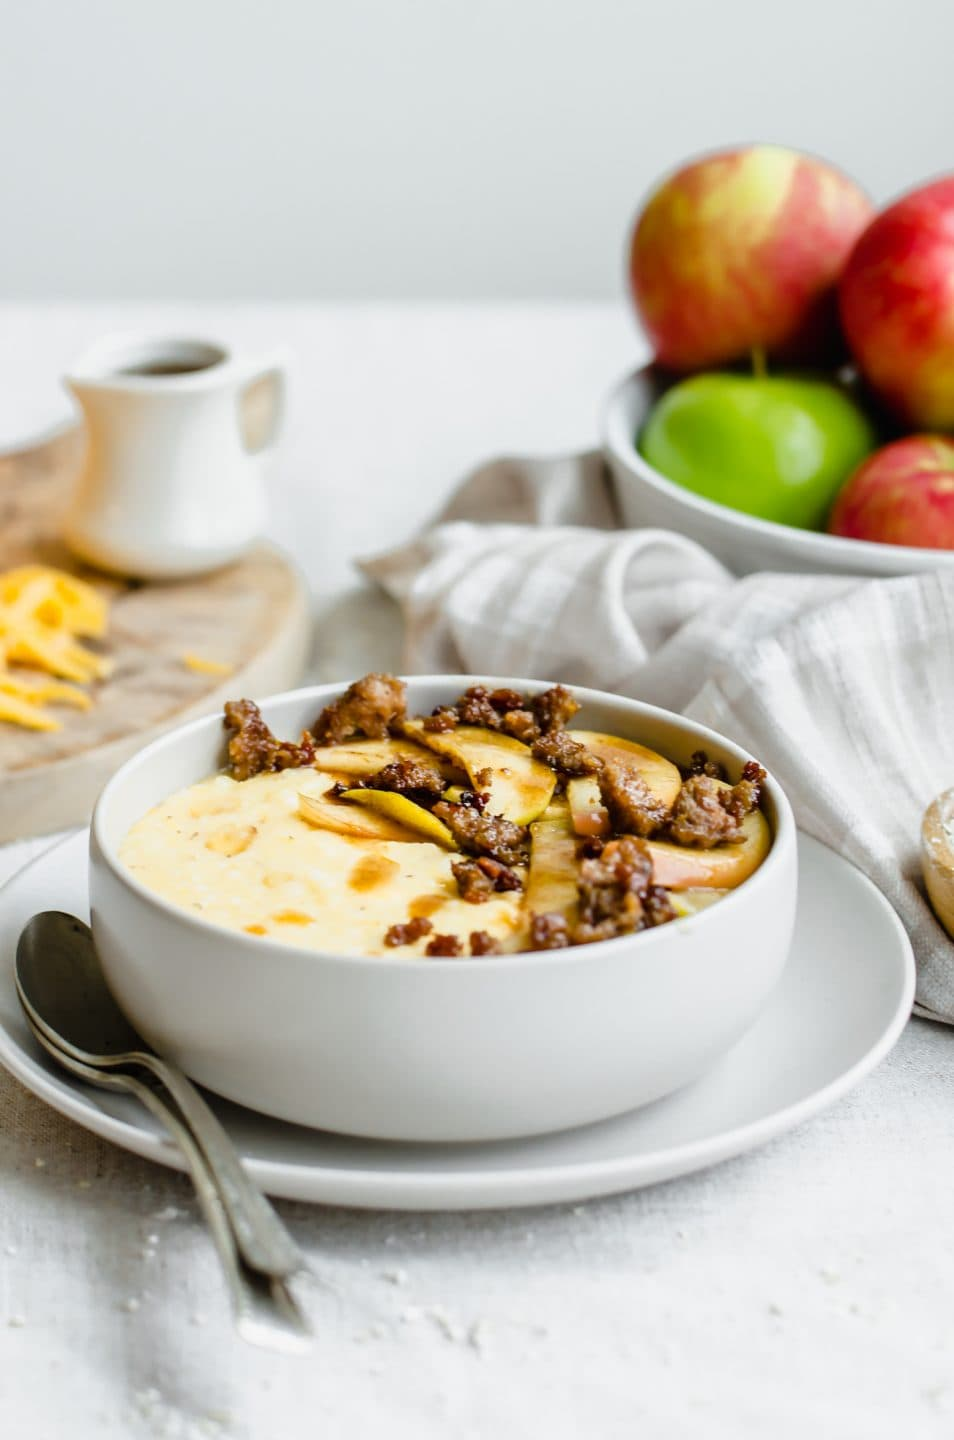 A grey bowl filled with cheddar grits, cinnamon apples, and sausage crumbles with a plate of apples in the back.